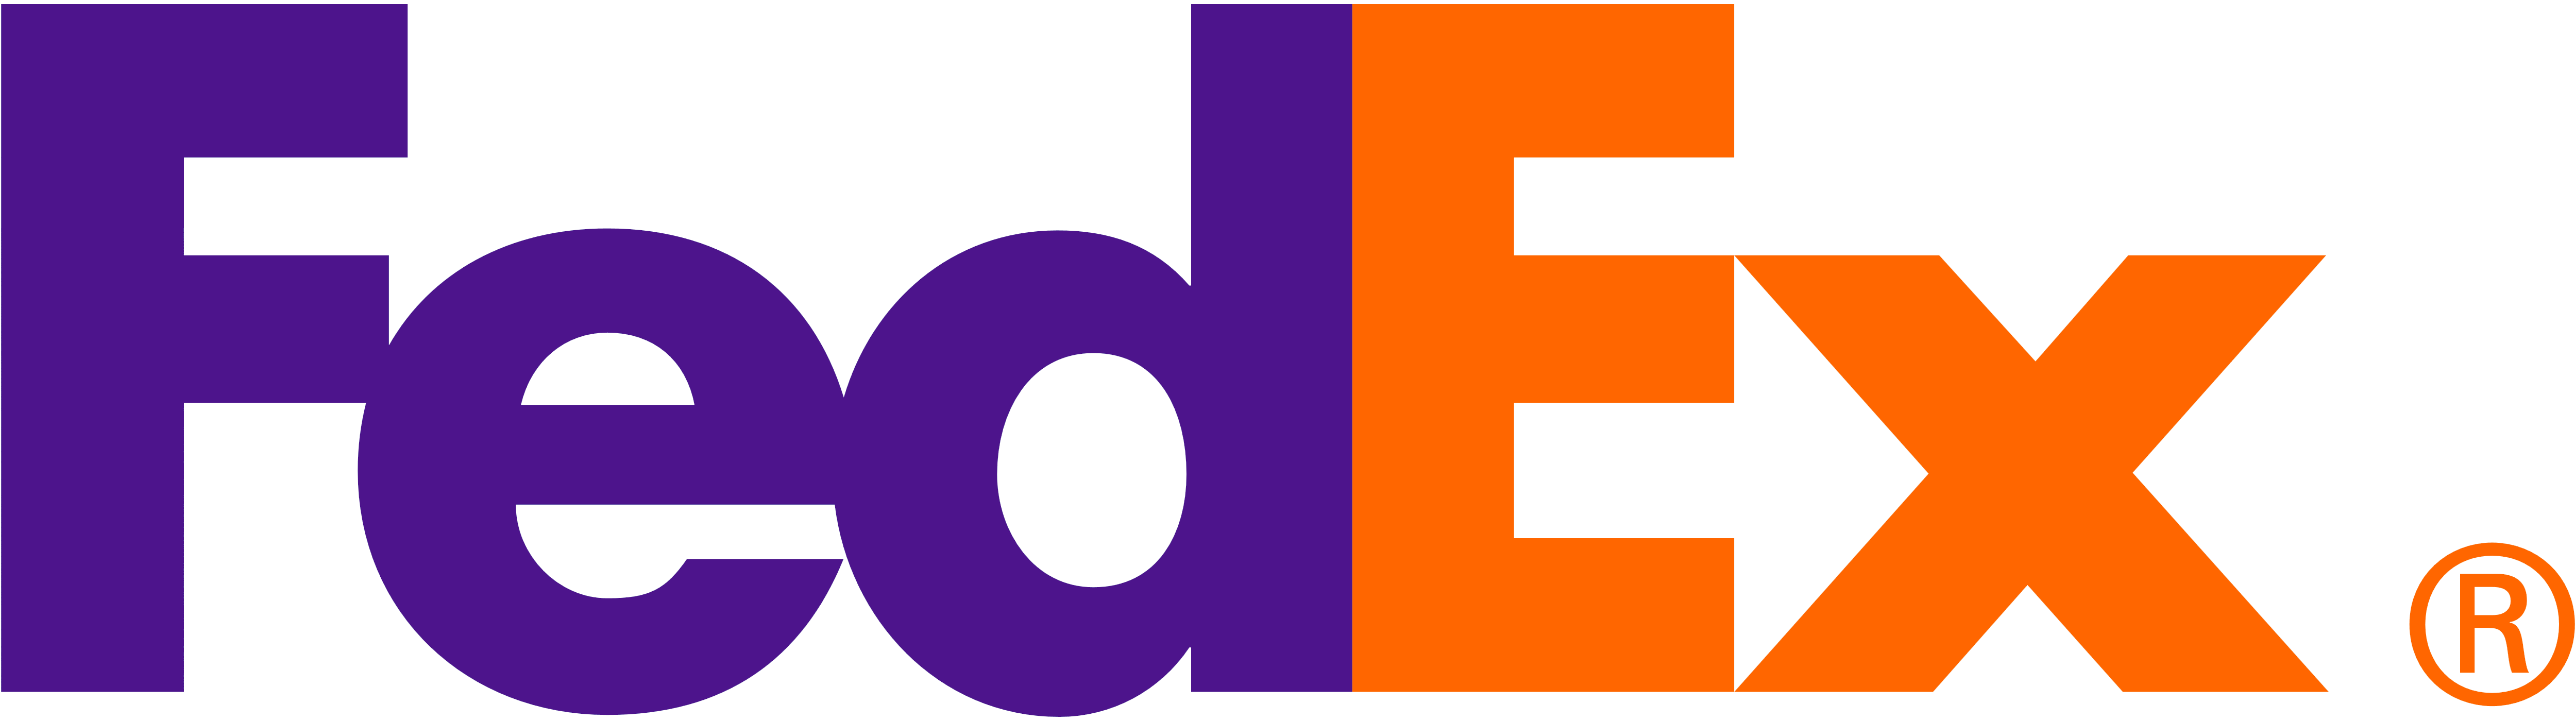 FedEx Logo Wallpaper